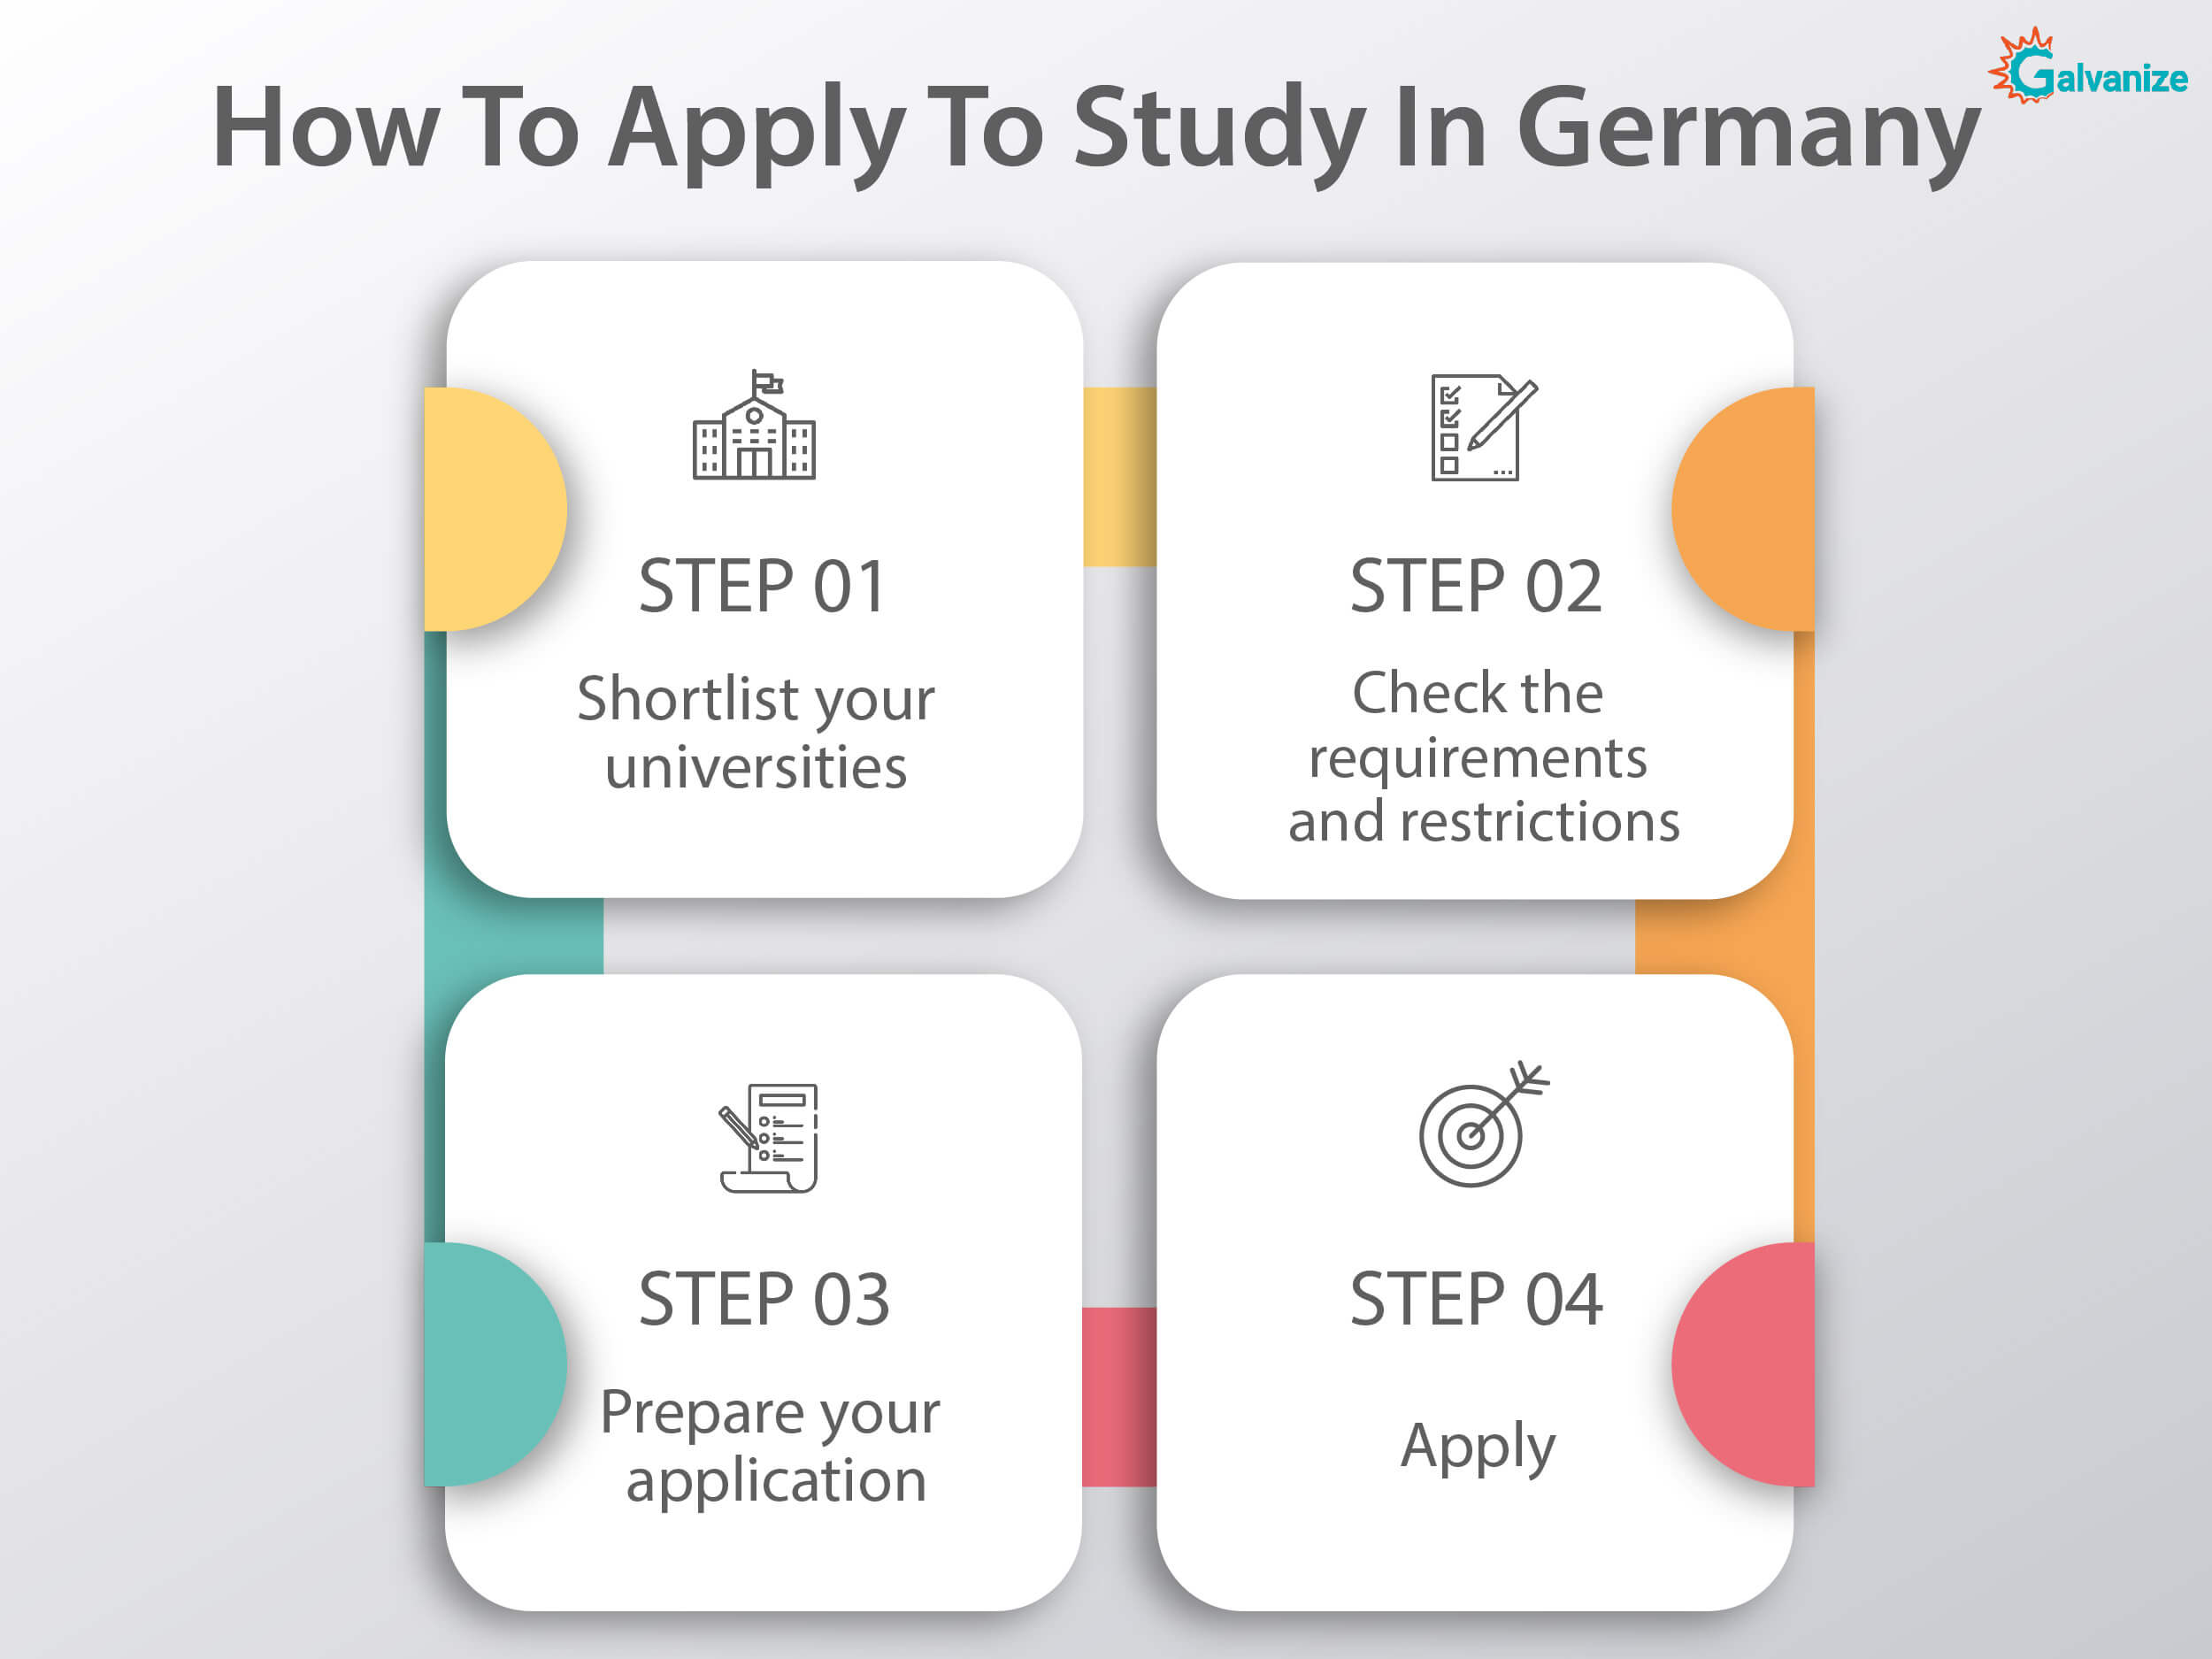 How to Apply to study in Germany | Application process for german universities | Study in Germany